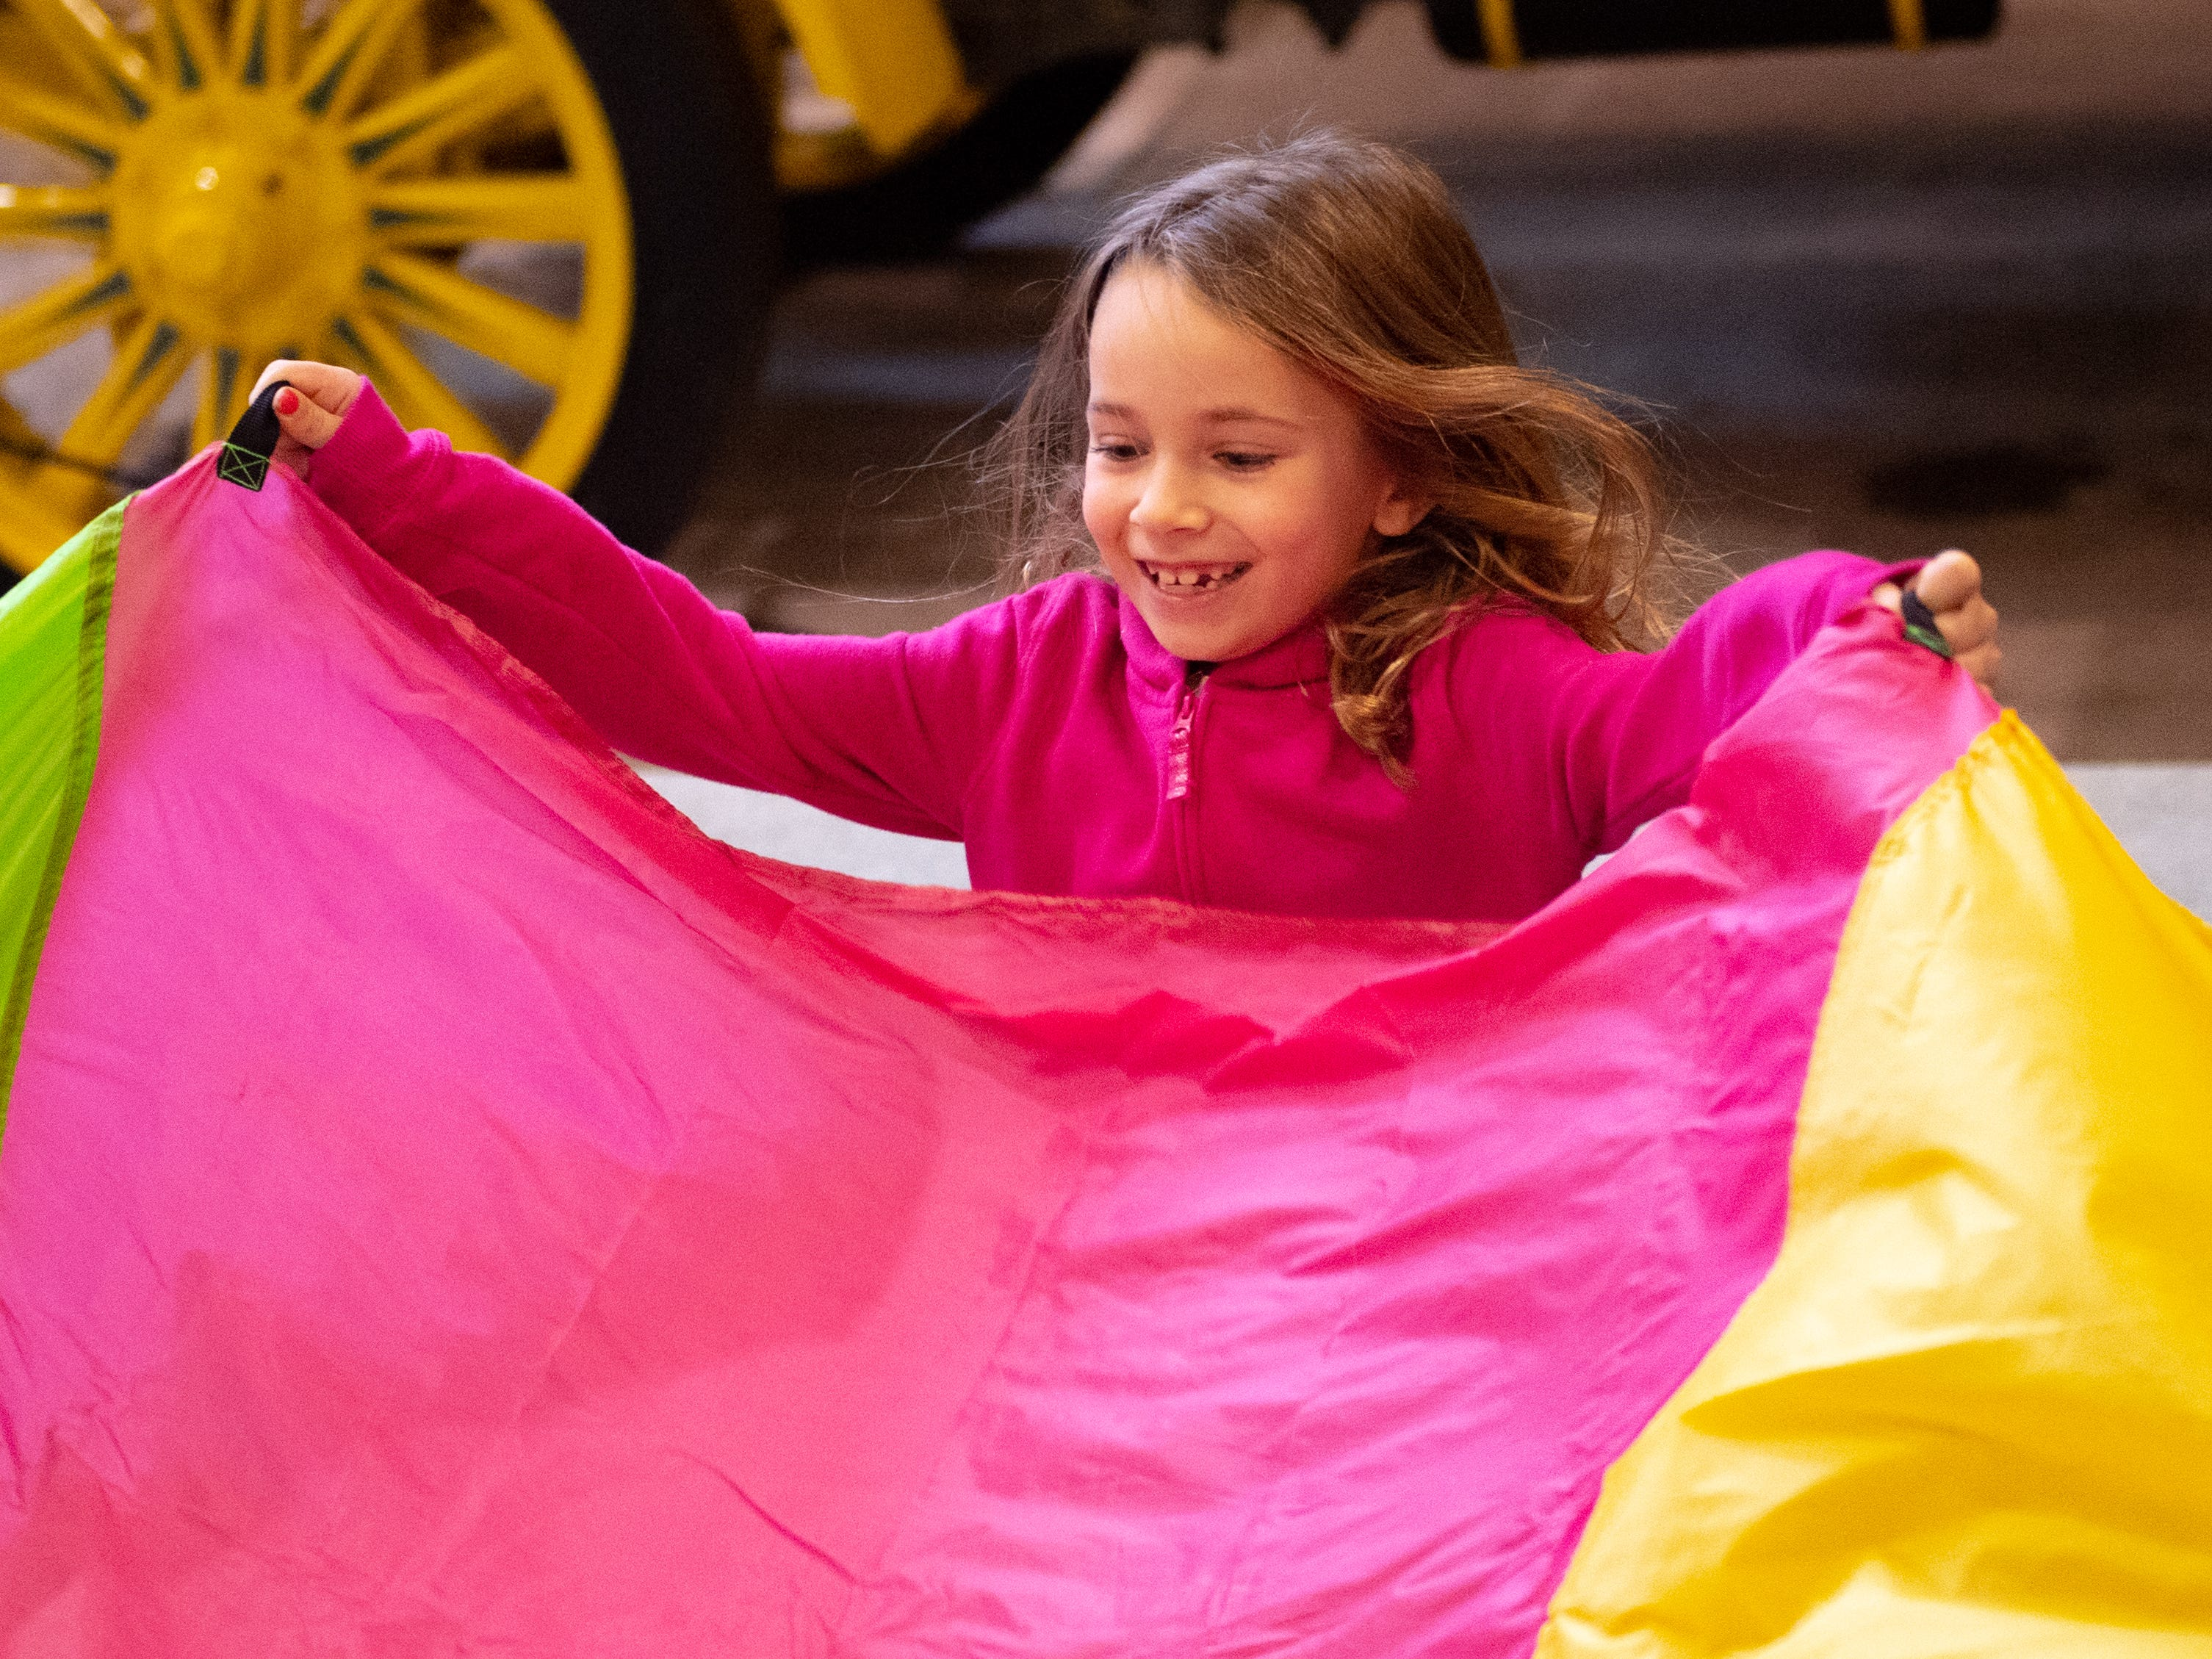 Ada Erdenbrack, 6, from Springrettsbury Township enjoys learning parachute games during Family Activity Day at the Agricultural and Industrial Museum, Friday, December 28, 2018.